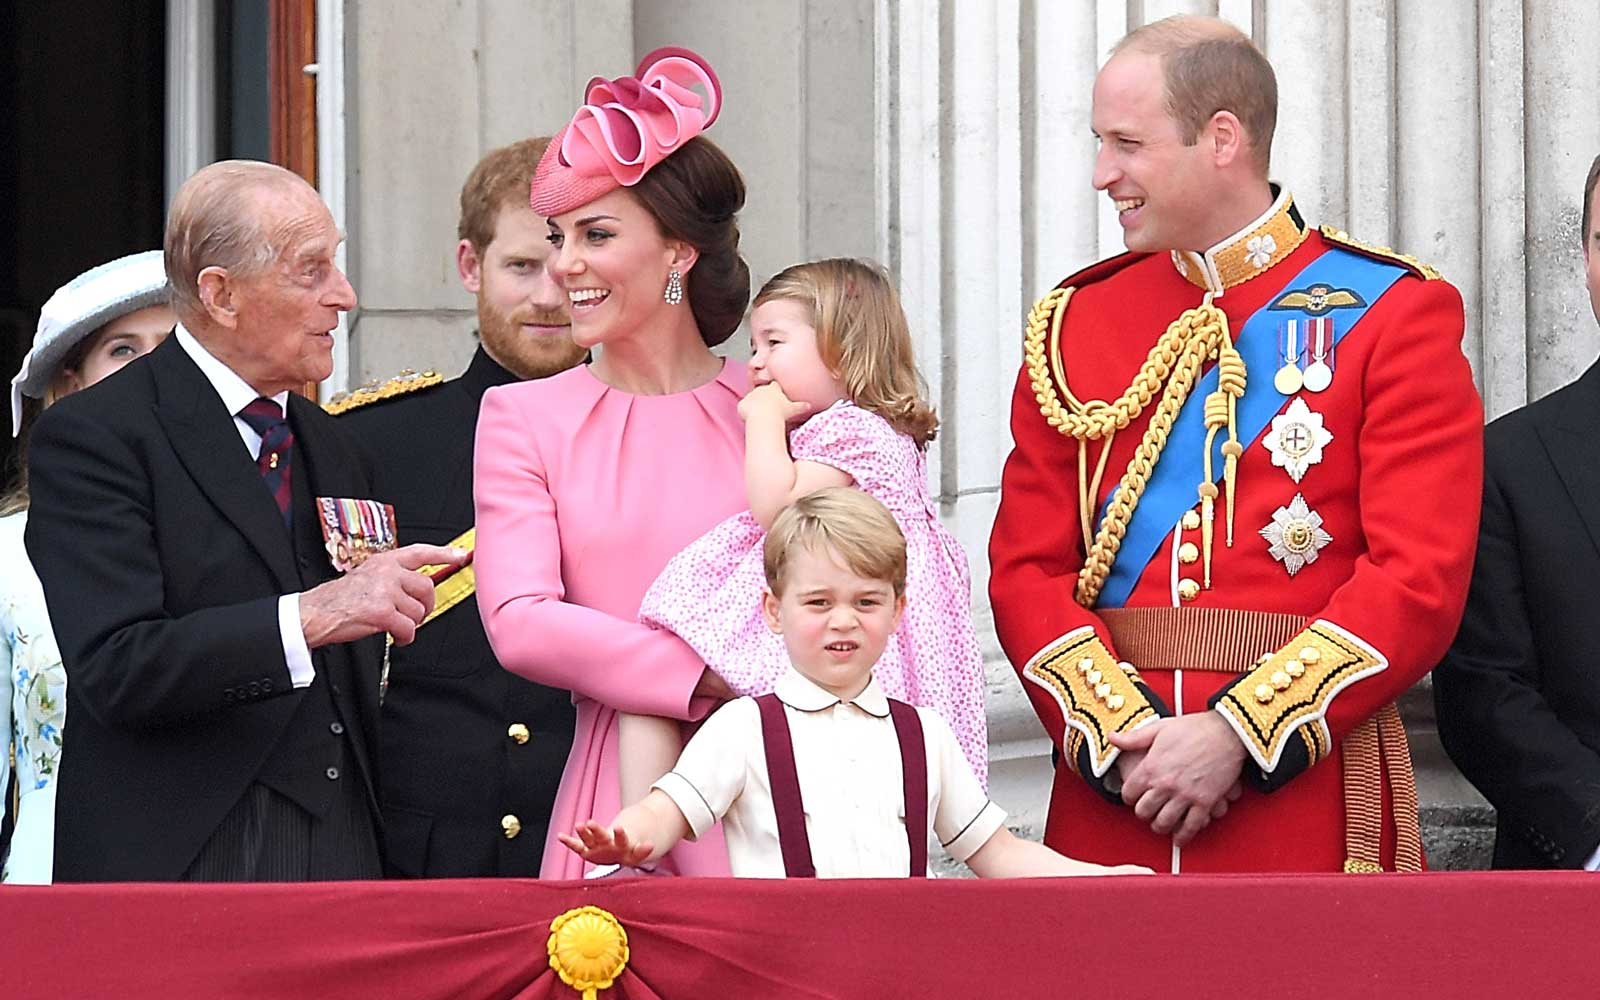 Prince William and Kate Middleton Welcome Third Royal Baby